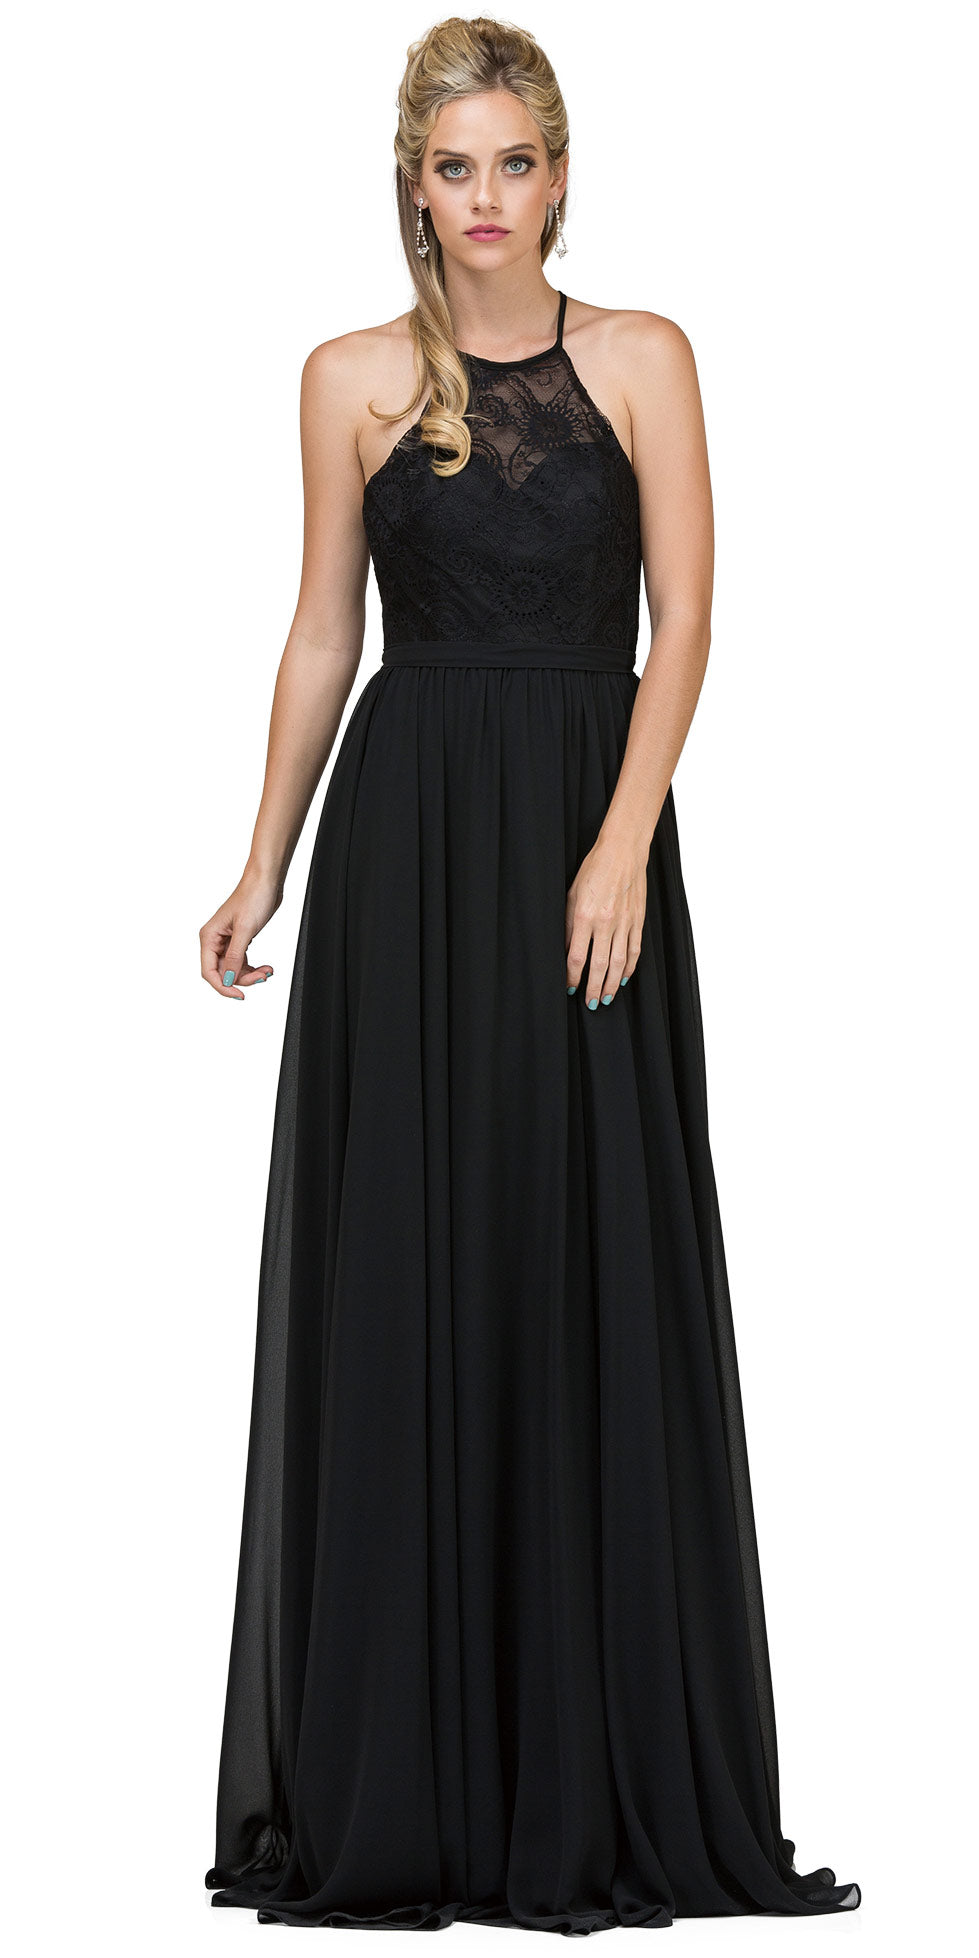 Image of Lace Bodice Criss Cross Back Long Bridesmaid Dress in Black